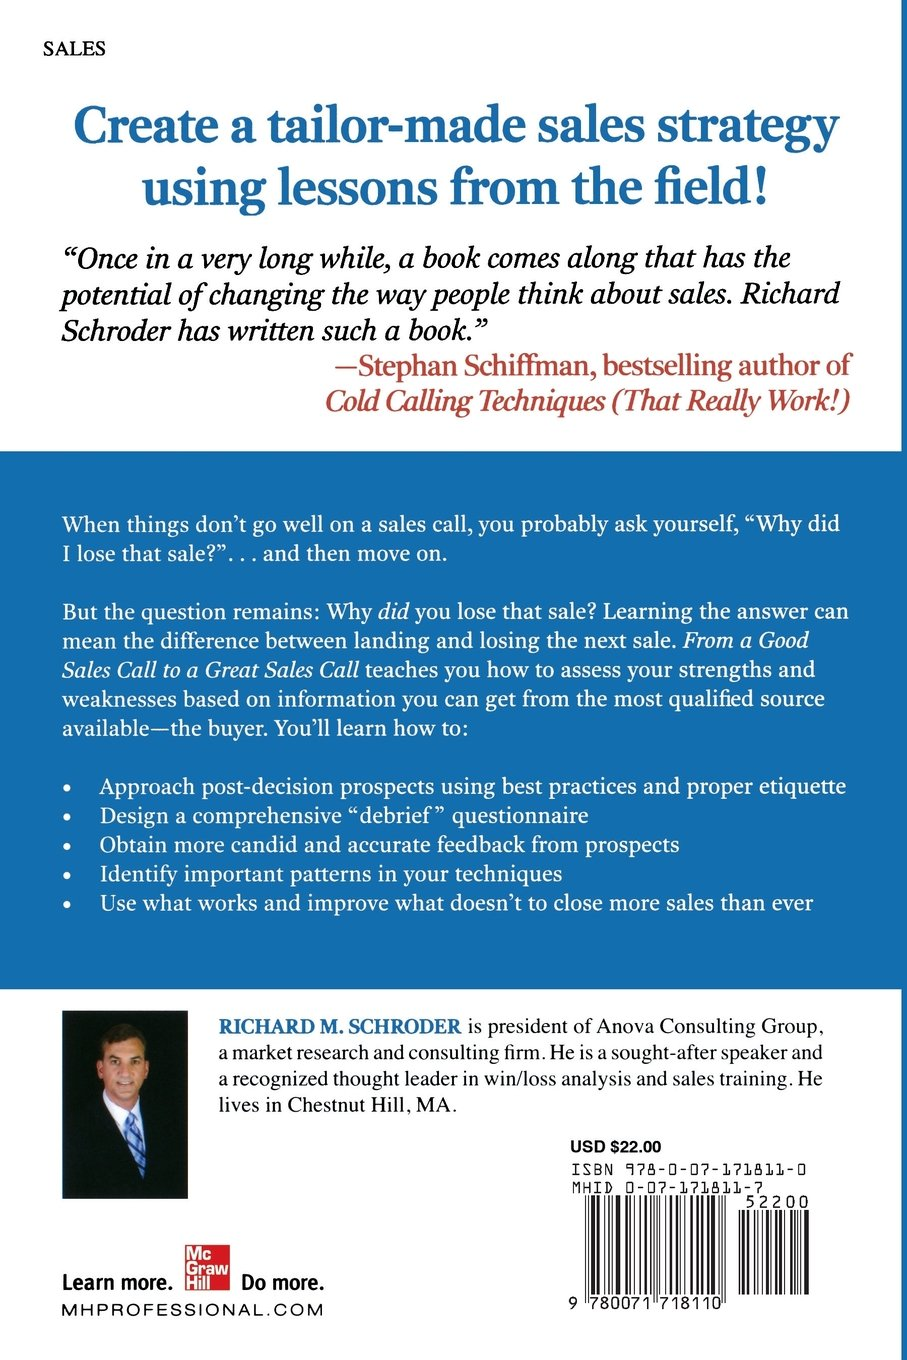 From a Good Sales Call to a Great Sales Call: Close More by Doing What You Do Best